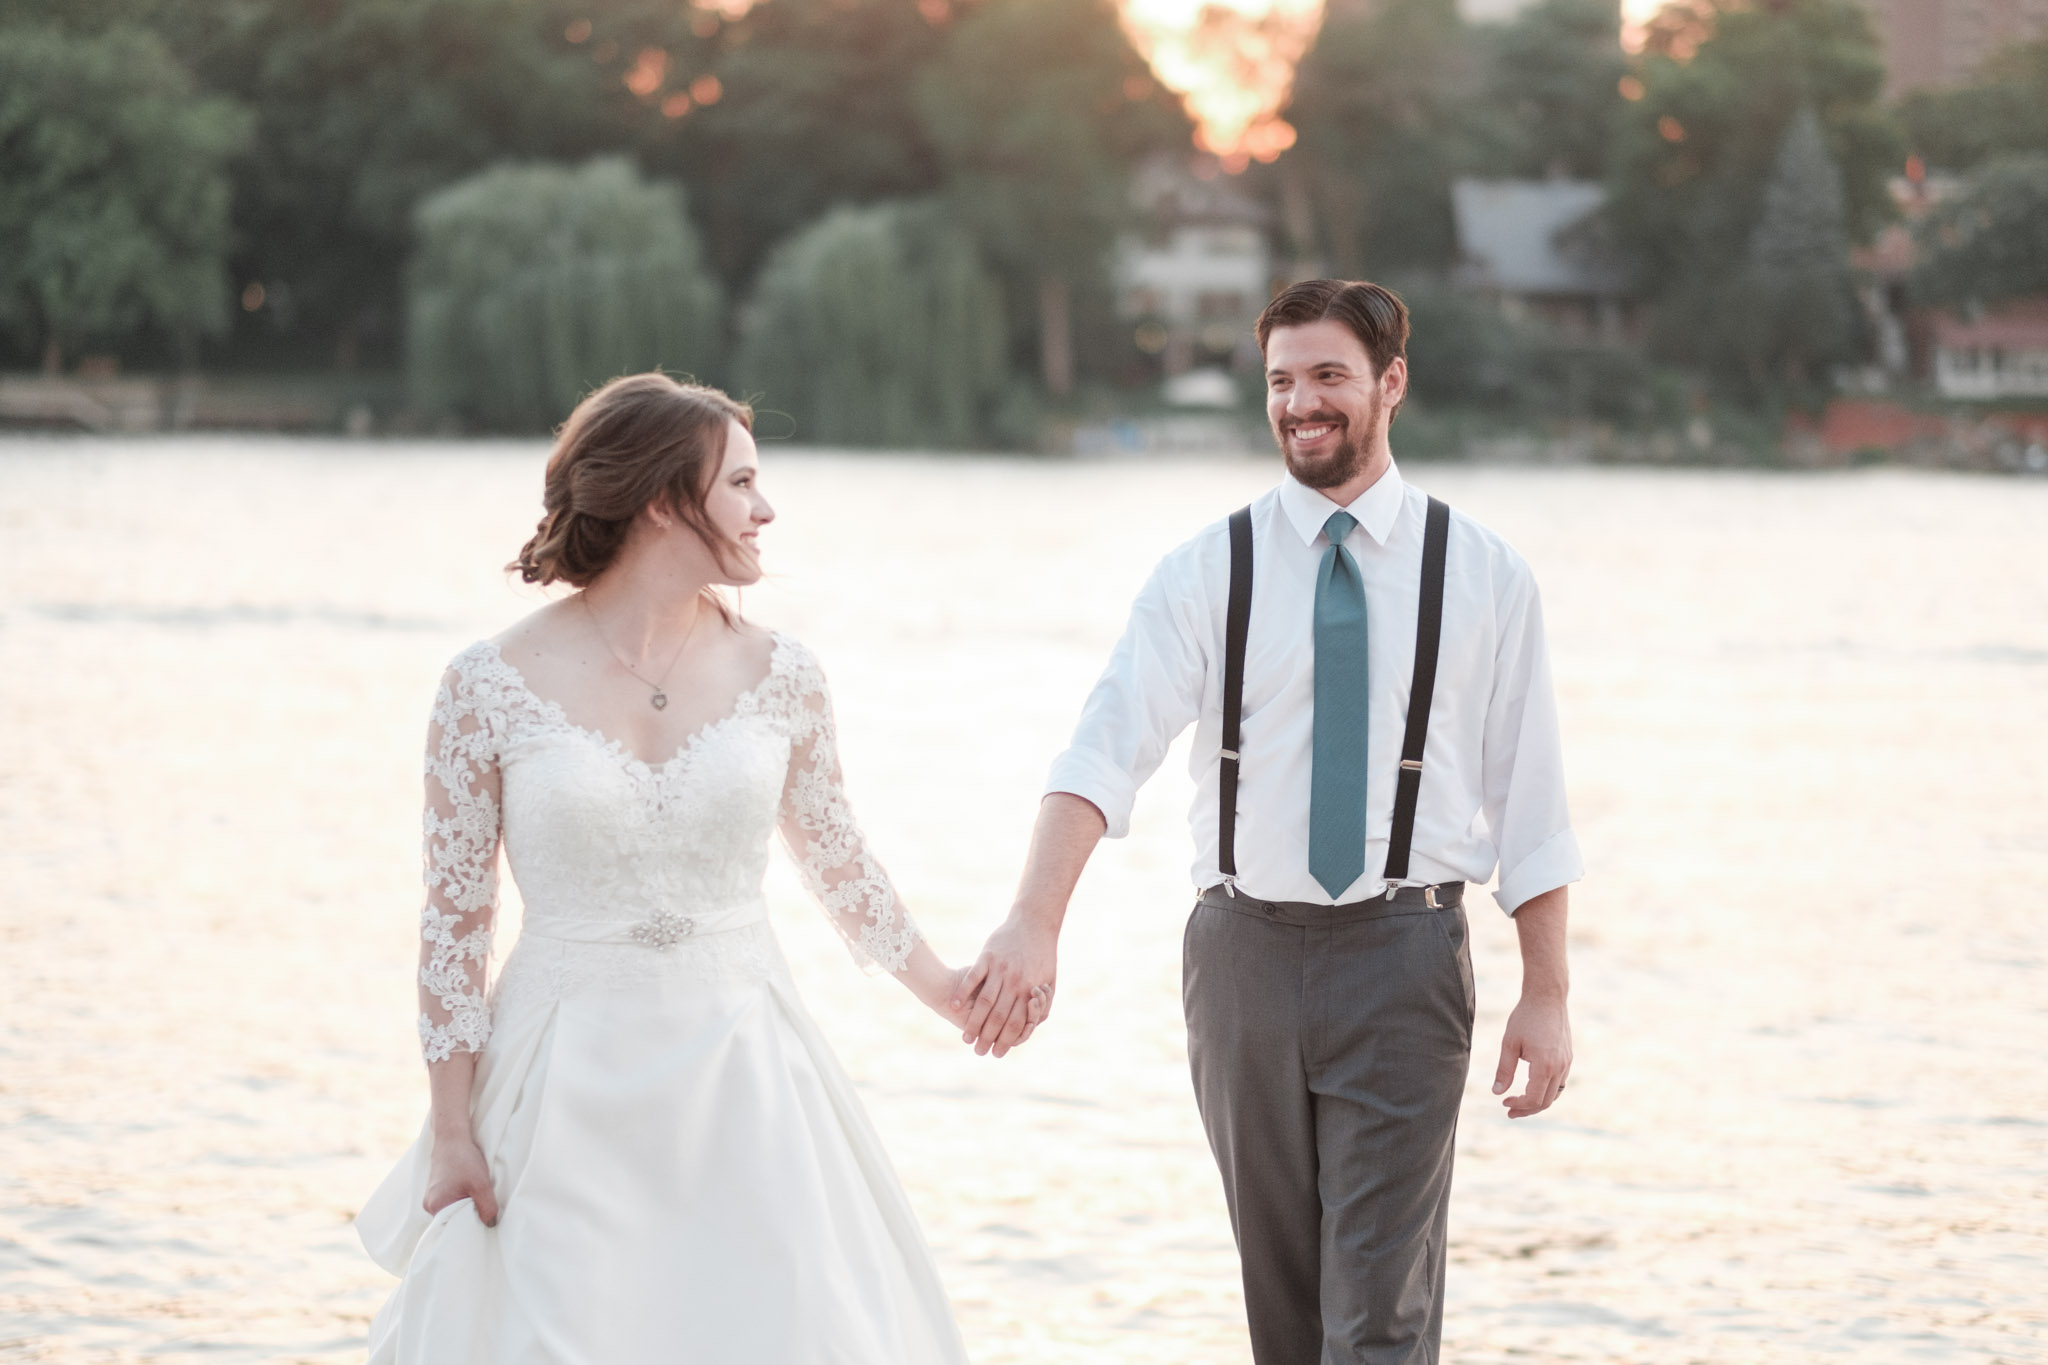 Bridal portrait during golden hour sunset on the dock with river in the background as couple looks at eachother walking holding hands and smiling.